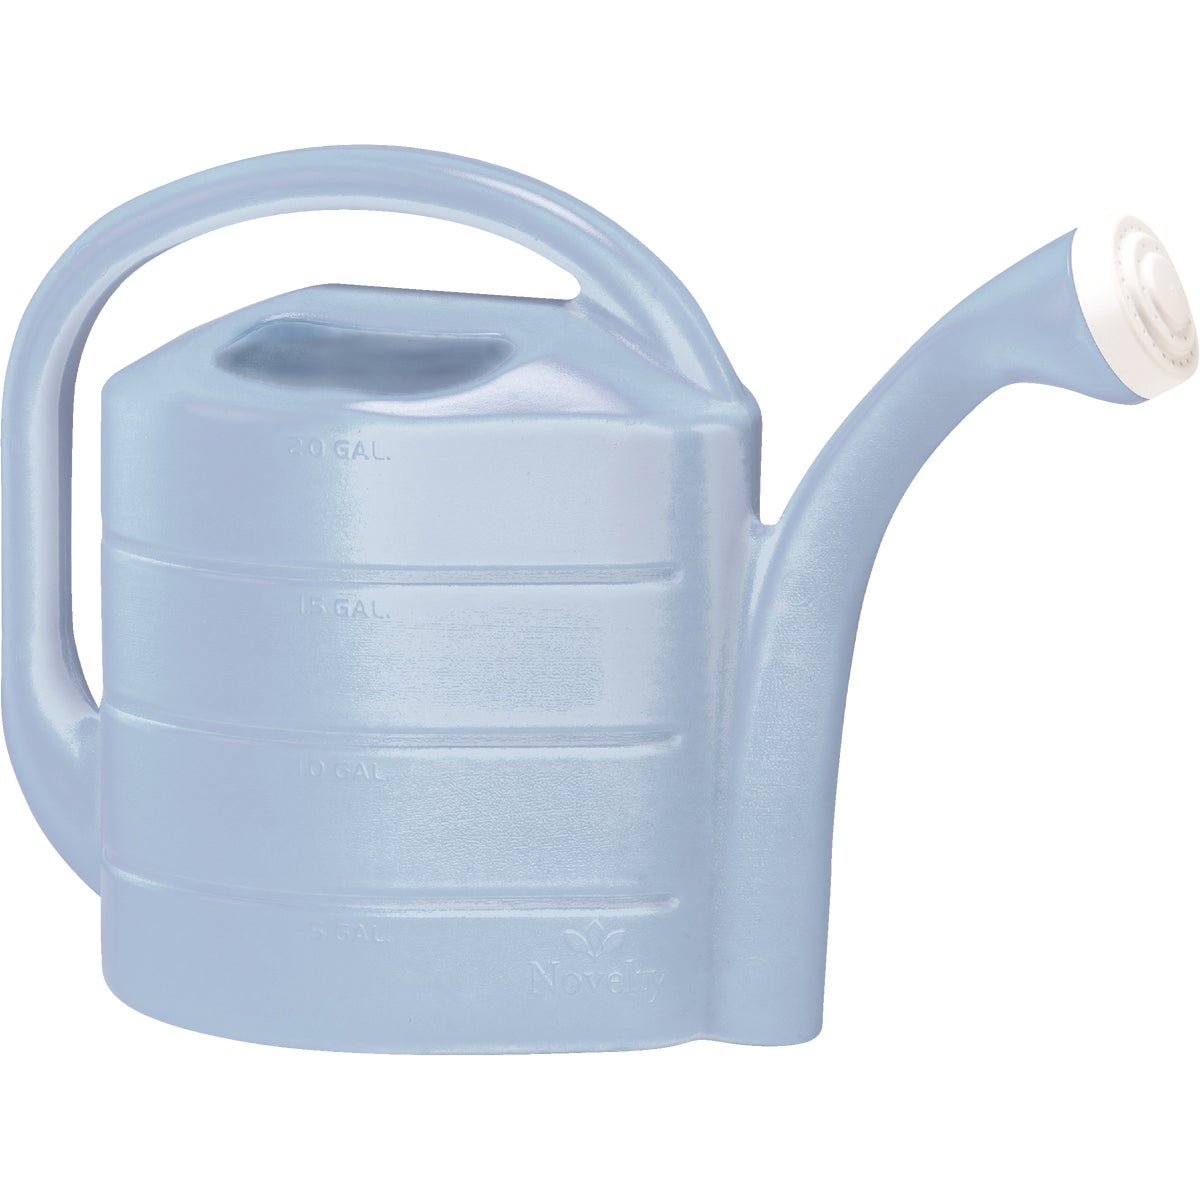 2GL BL POLY WATERING CAN